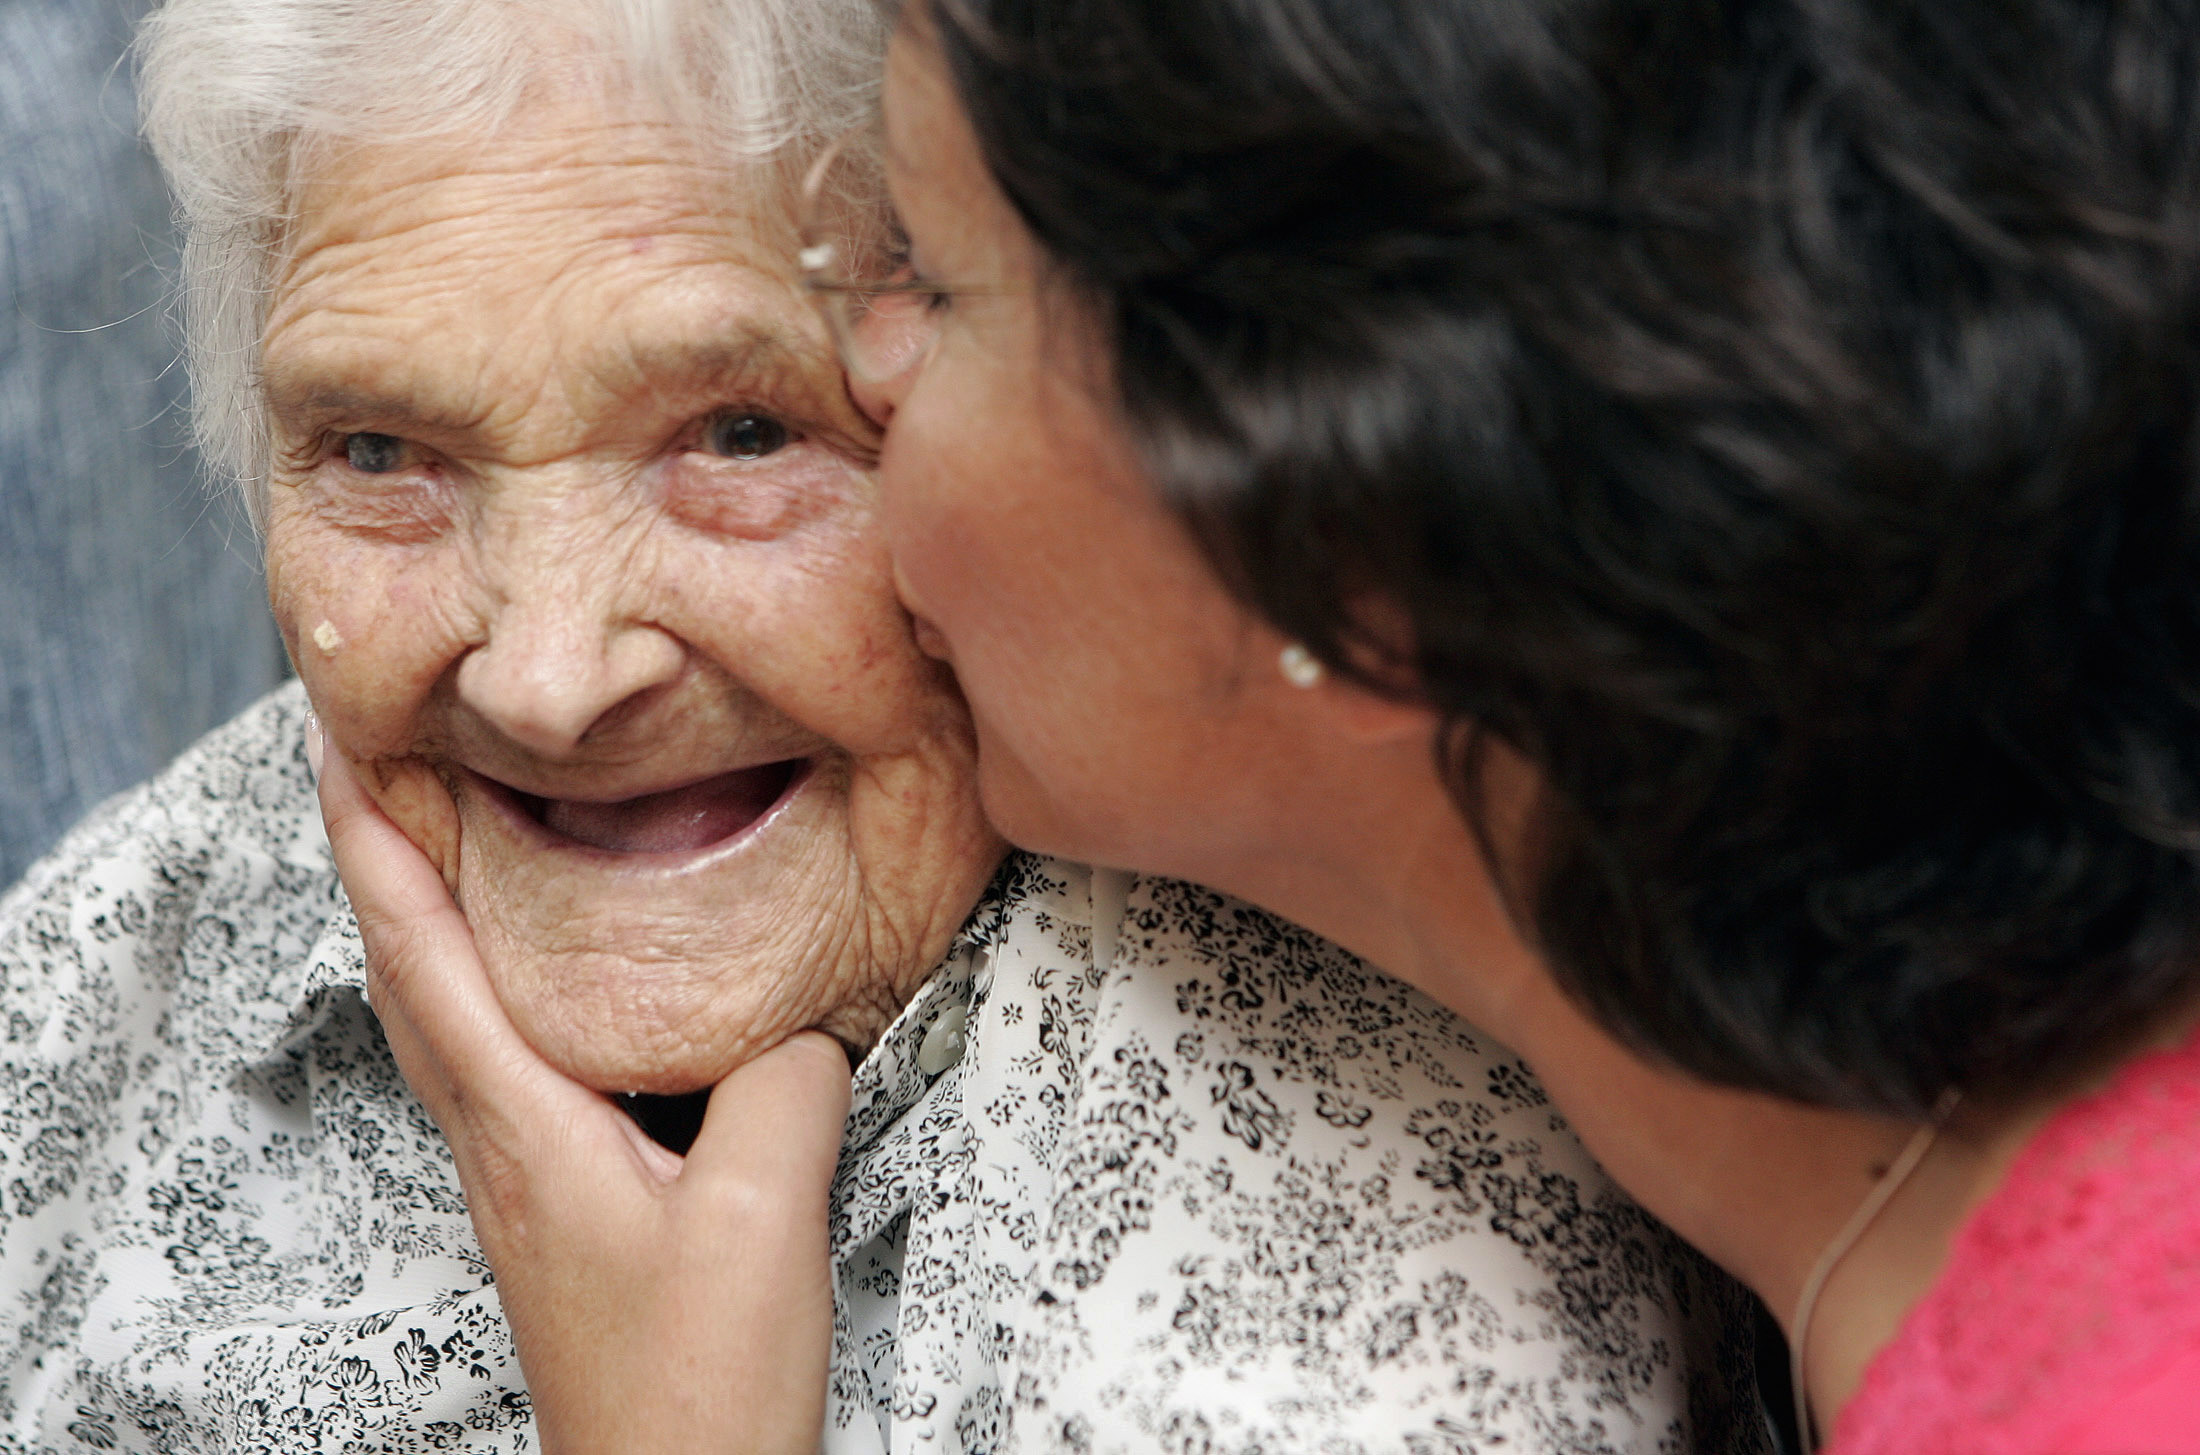 caring for the old and aging